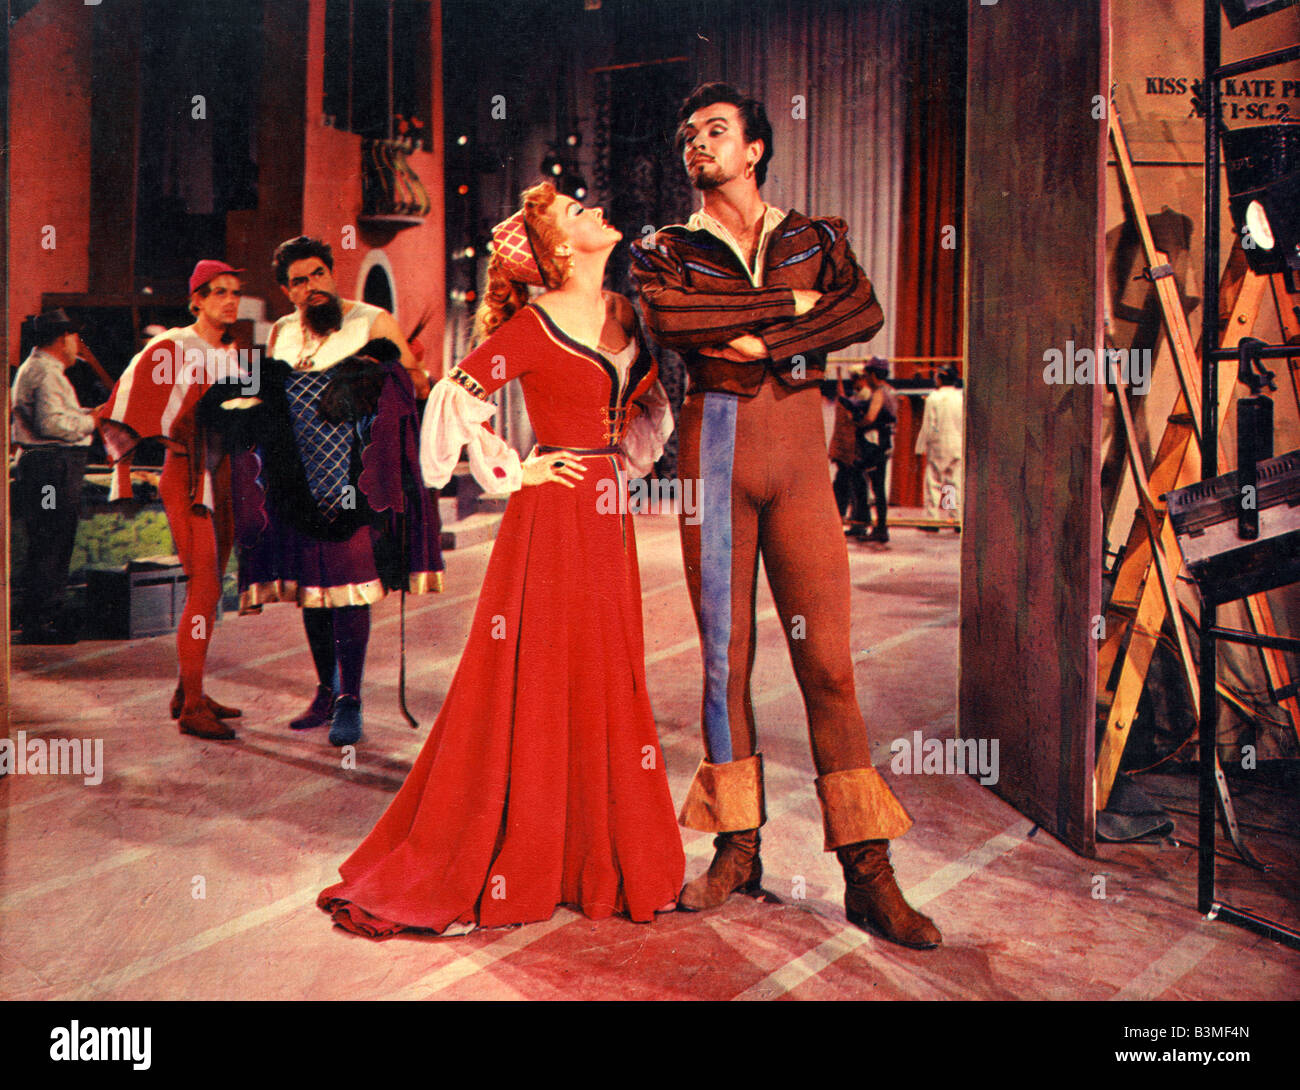 KISS ME KATE 1953 MGM film with - 281.4KB